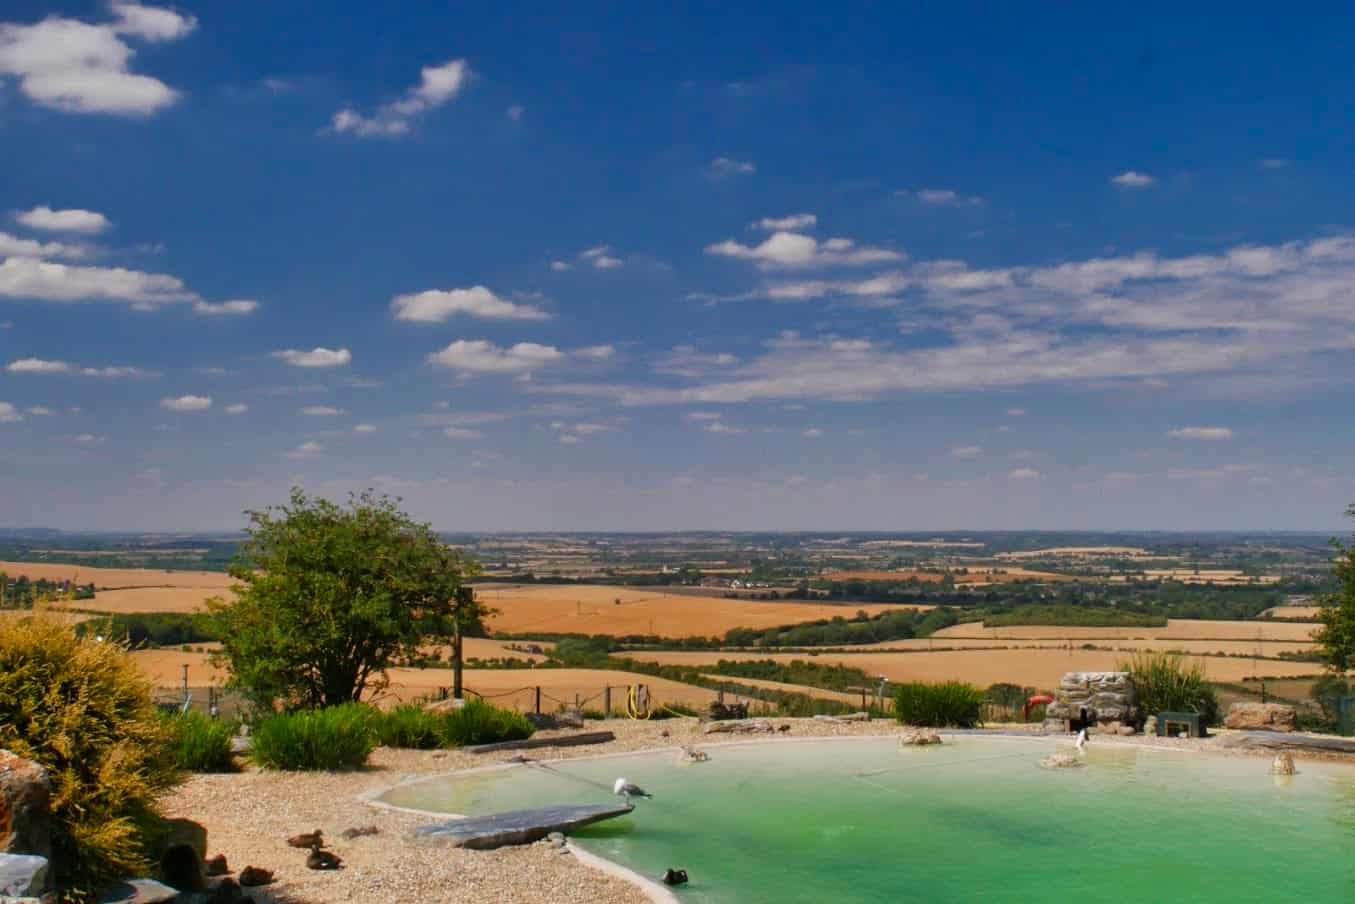 A penguin pool overlooking hills and fields